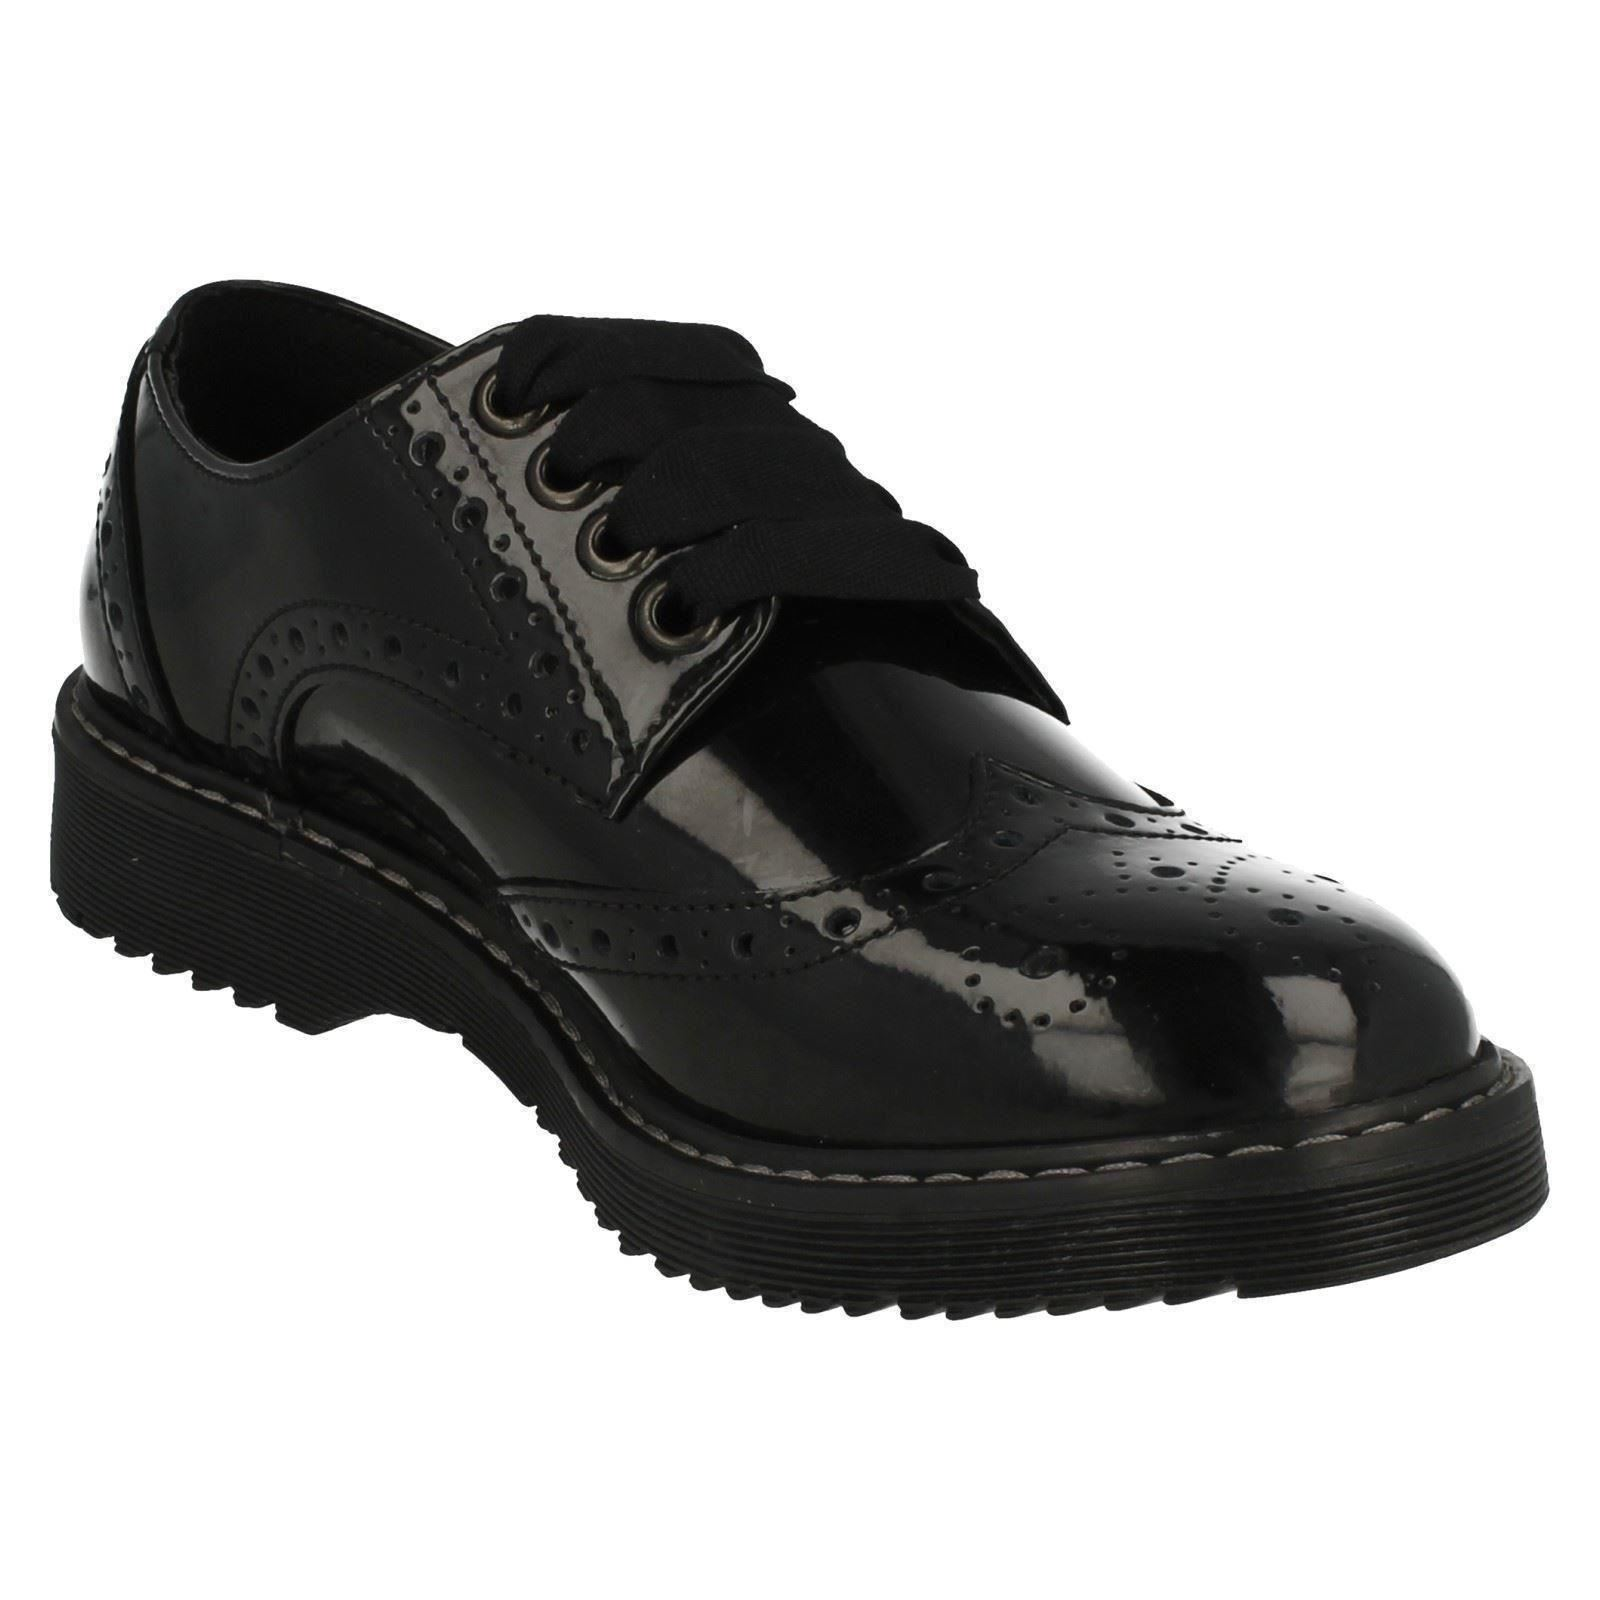 Girls Angry Angels by Startrite Lace Up Formal Shoes Impulsive